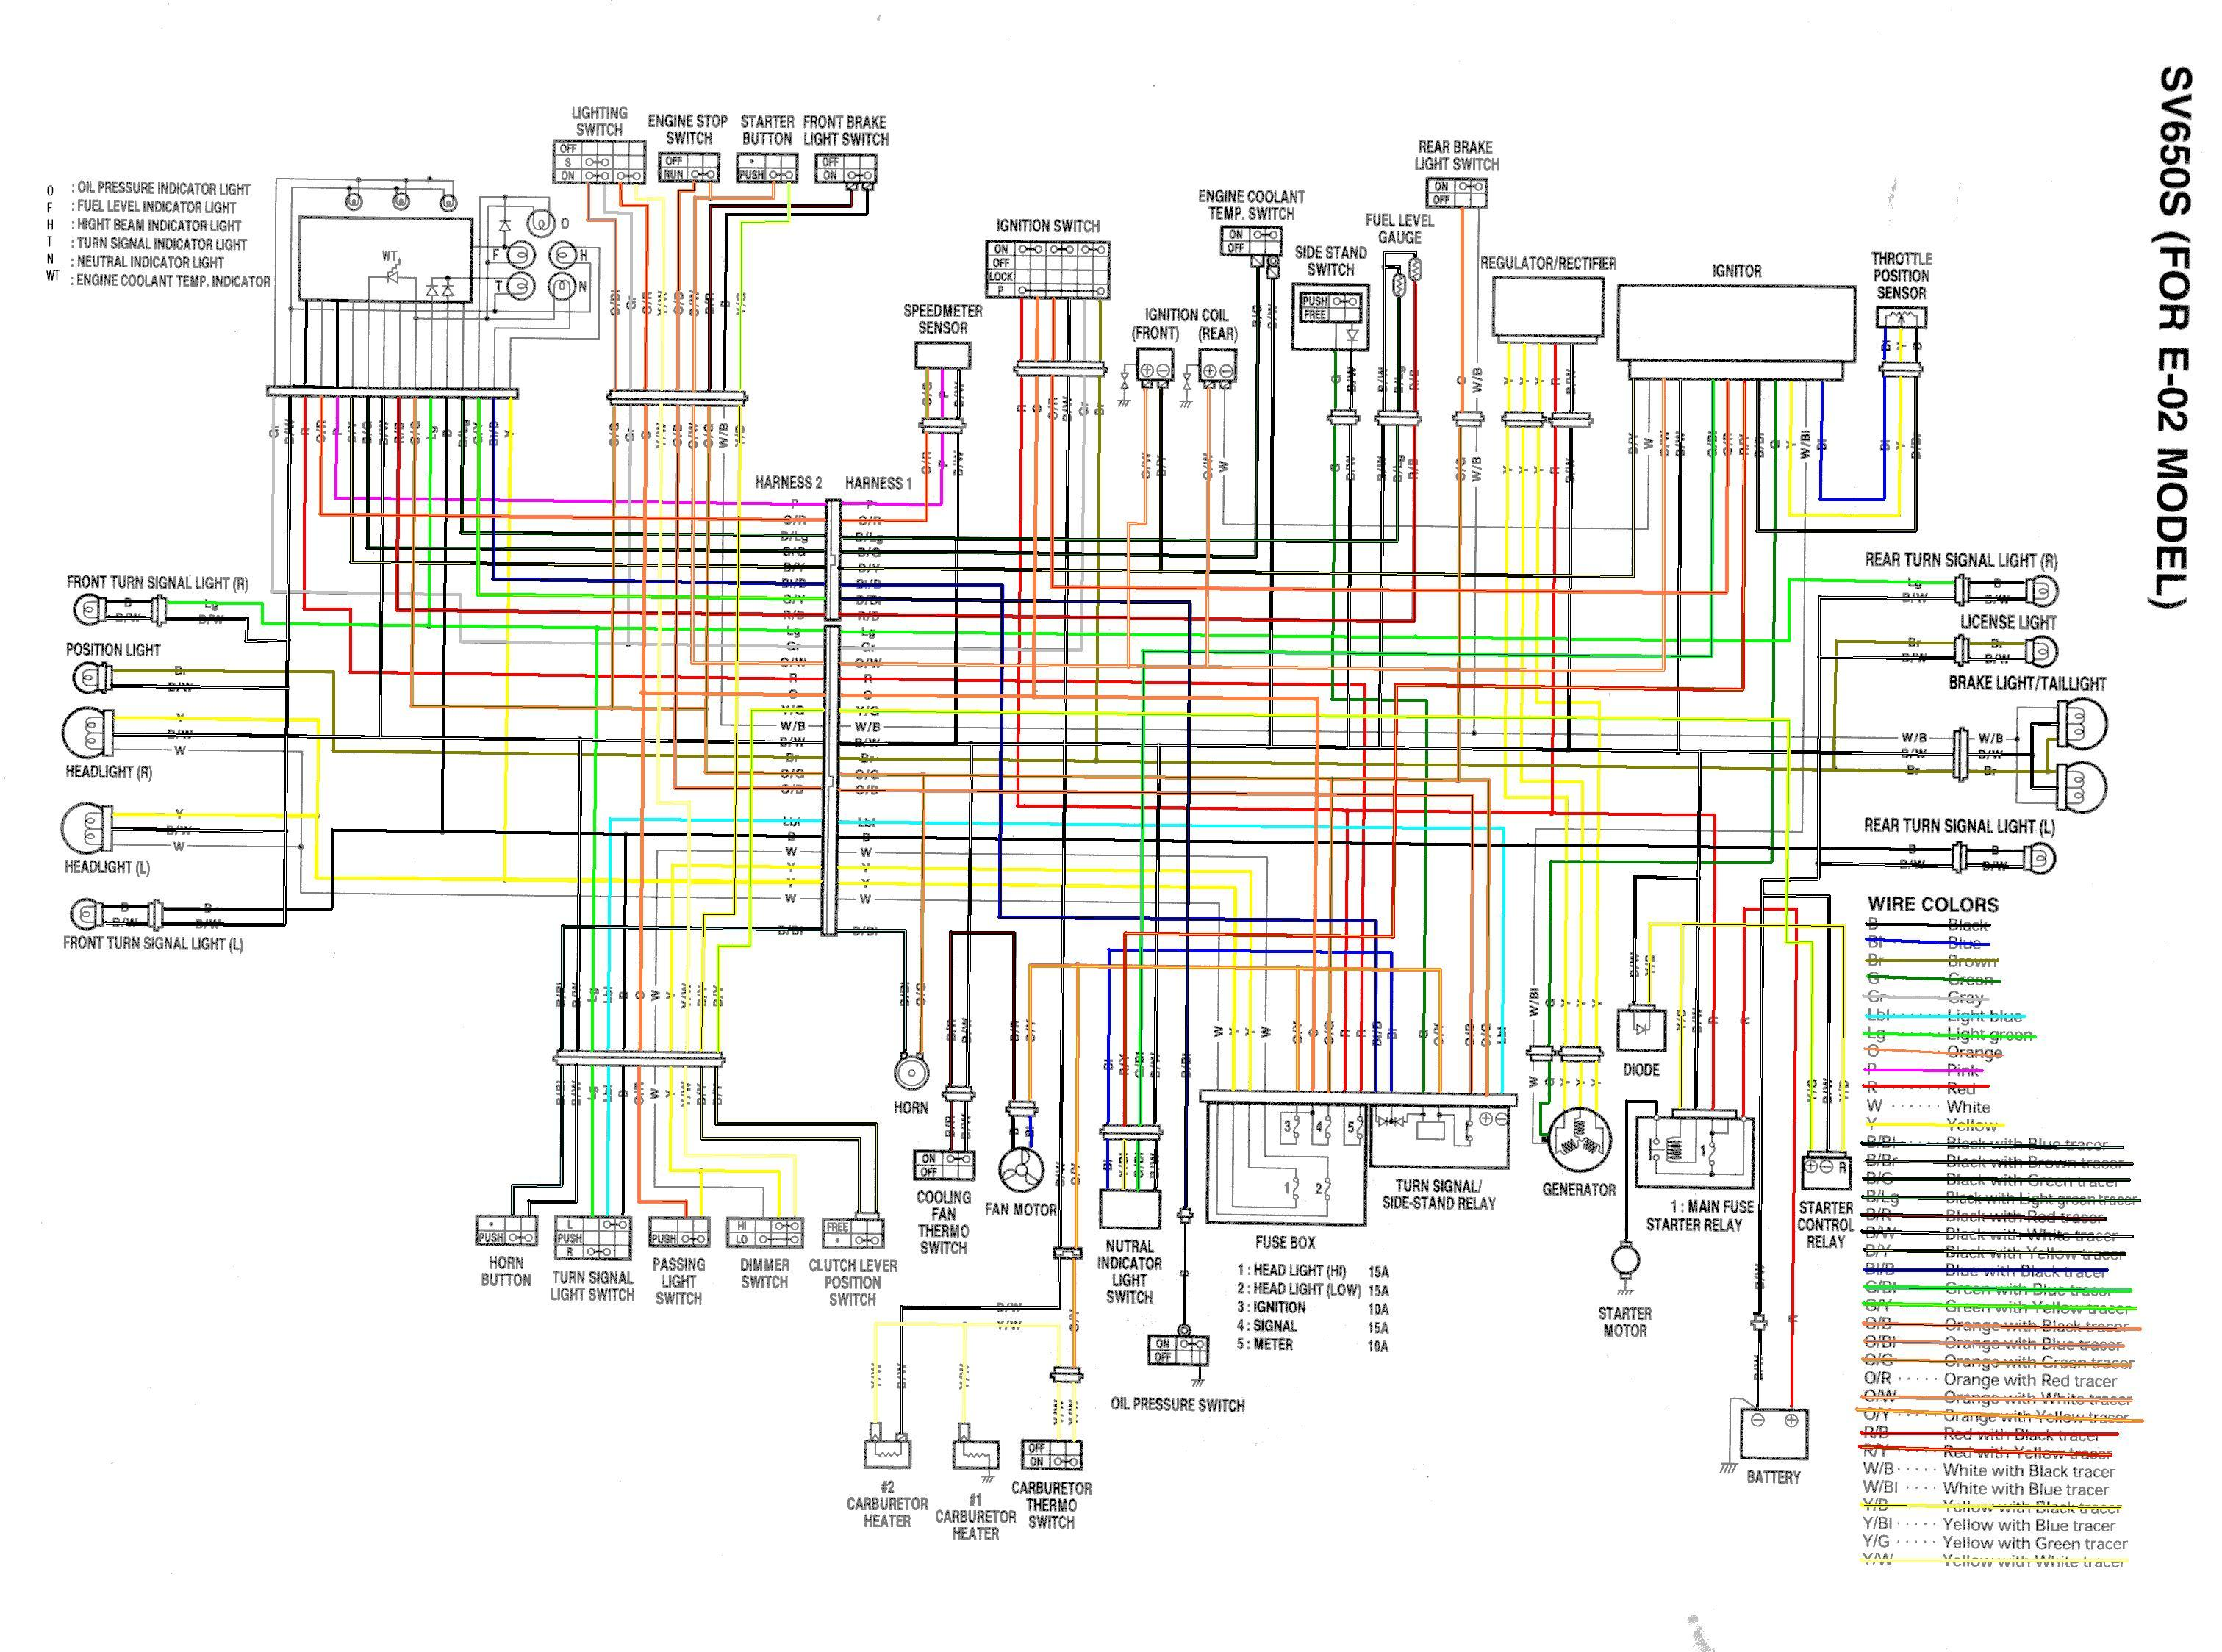 2007 Sv650 Wiring Diagram Everything About Yamaha Outboard Ignition Library Rh 69 Muehlwald De Suzuki Electrical Gsxr